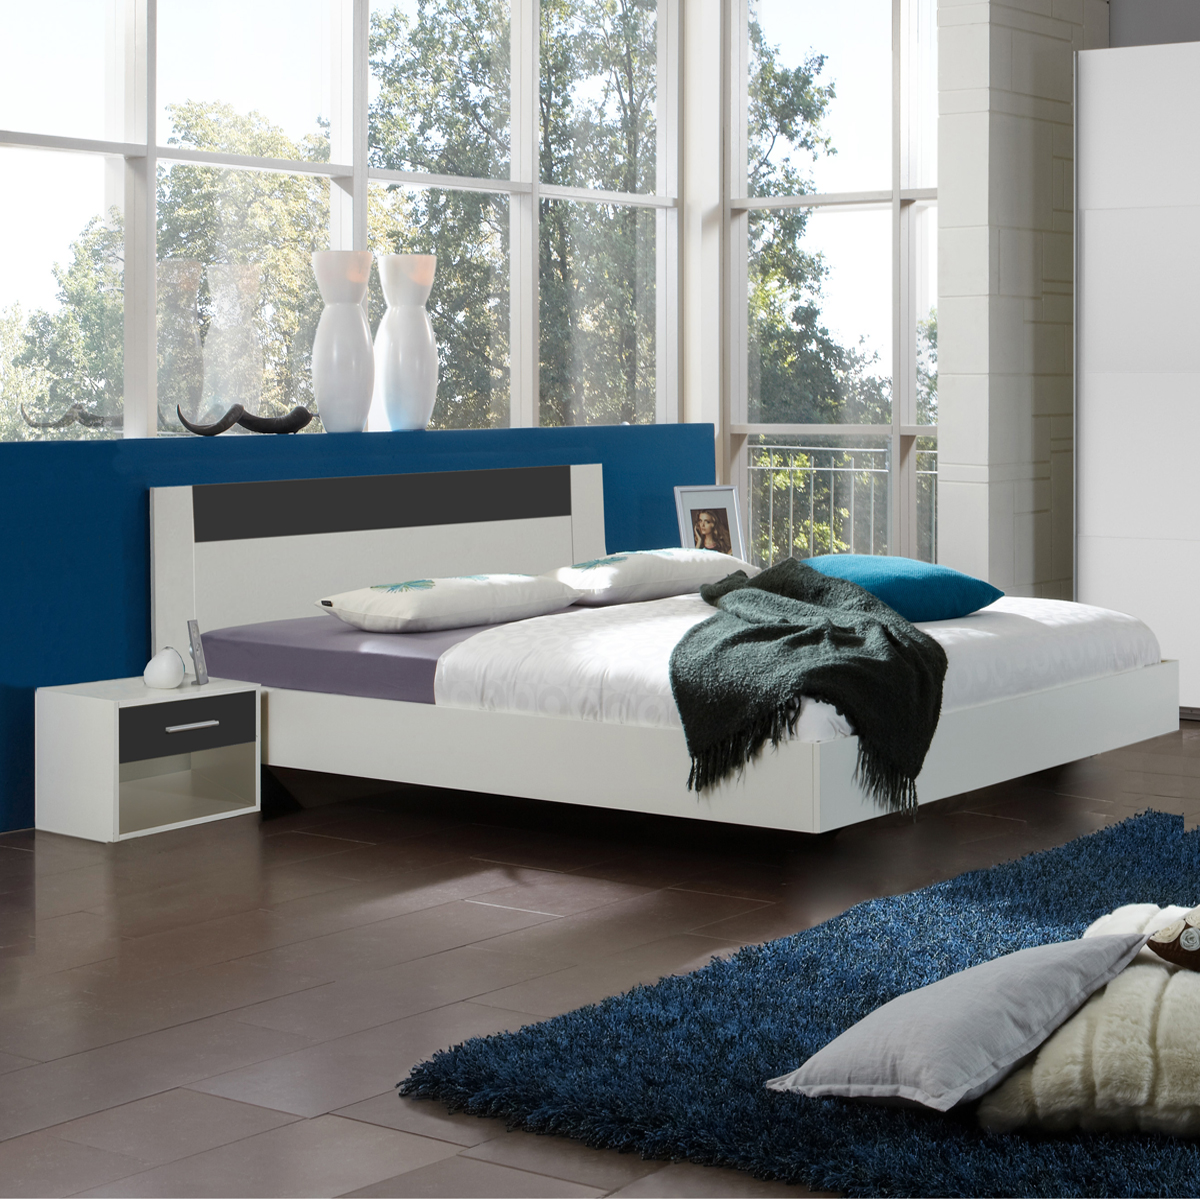 bettanlage ilona futonbett 180x200 nachttisch in alpinwei und anthrazit ebay. Black Bedroom Furniture Sets. Home Design Ideas